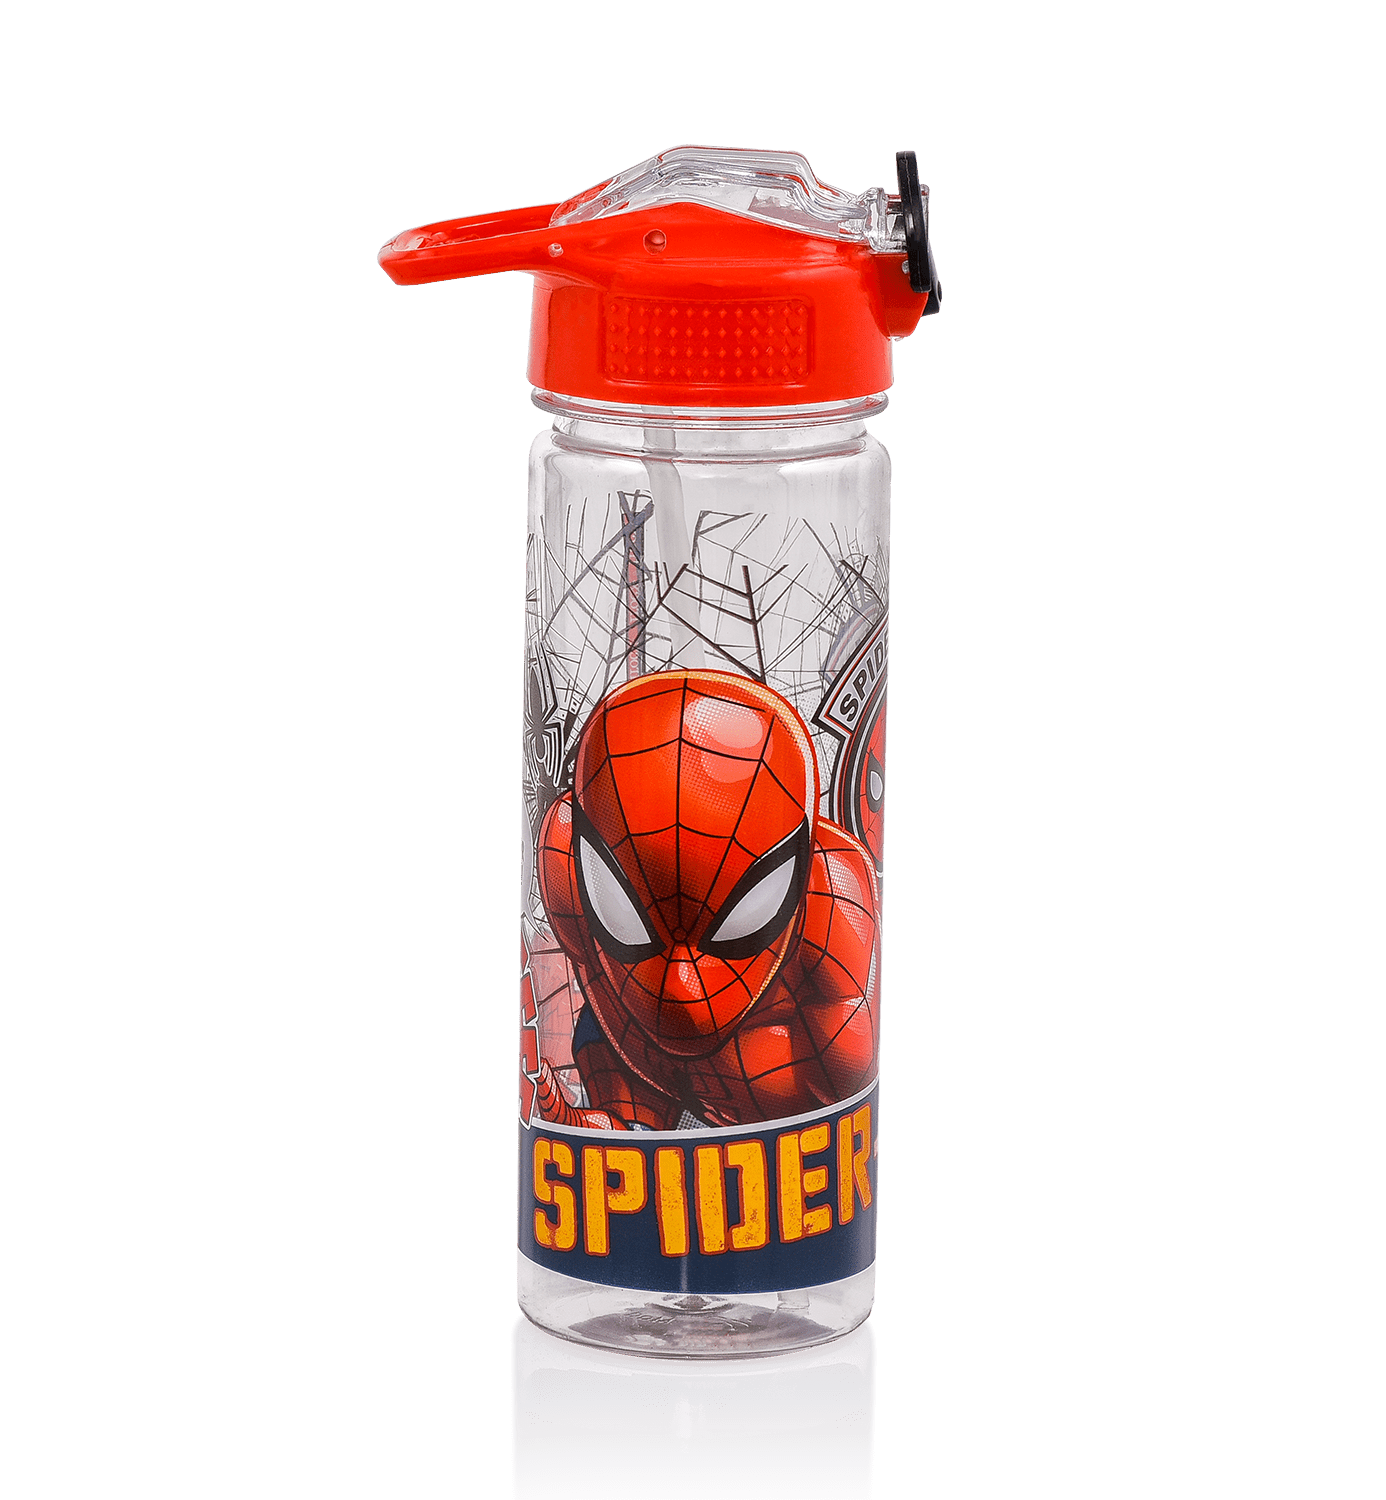 Spiderman - SPIDERMAN PLASTİK MATARA / RED WEB